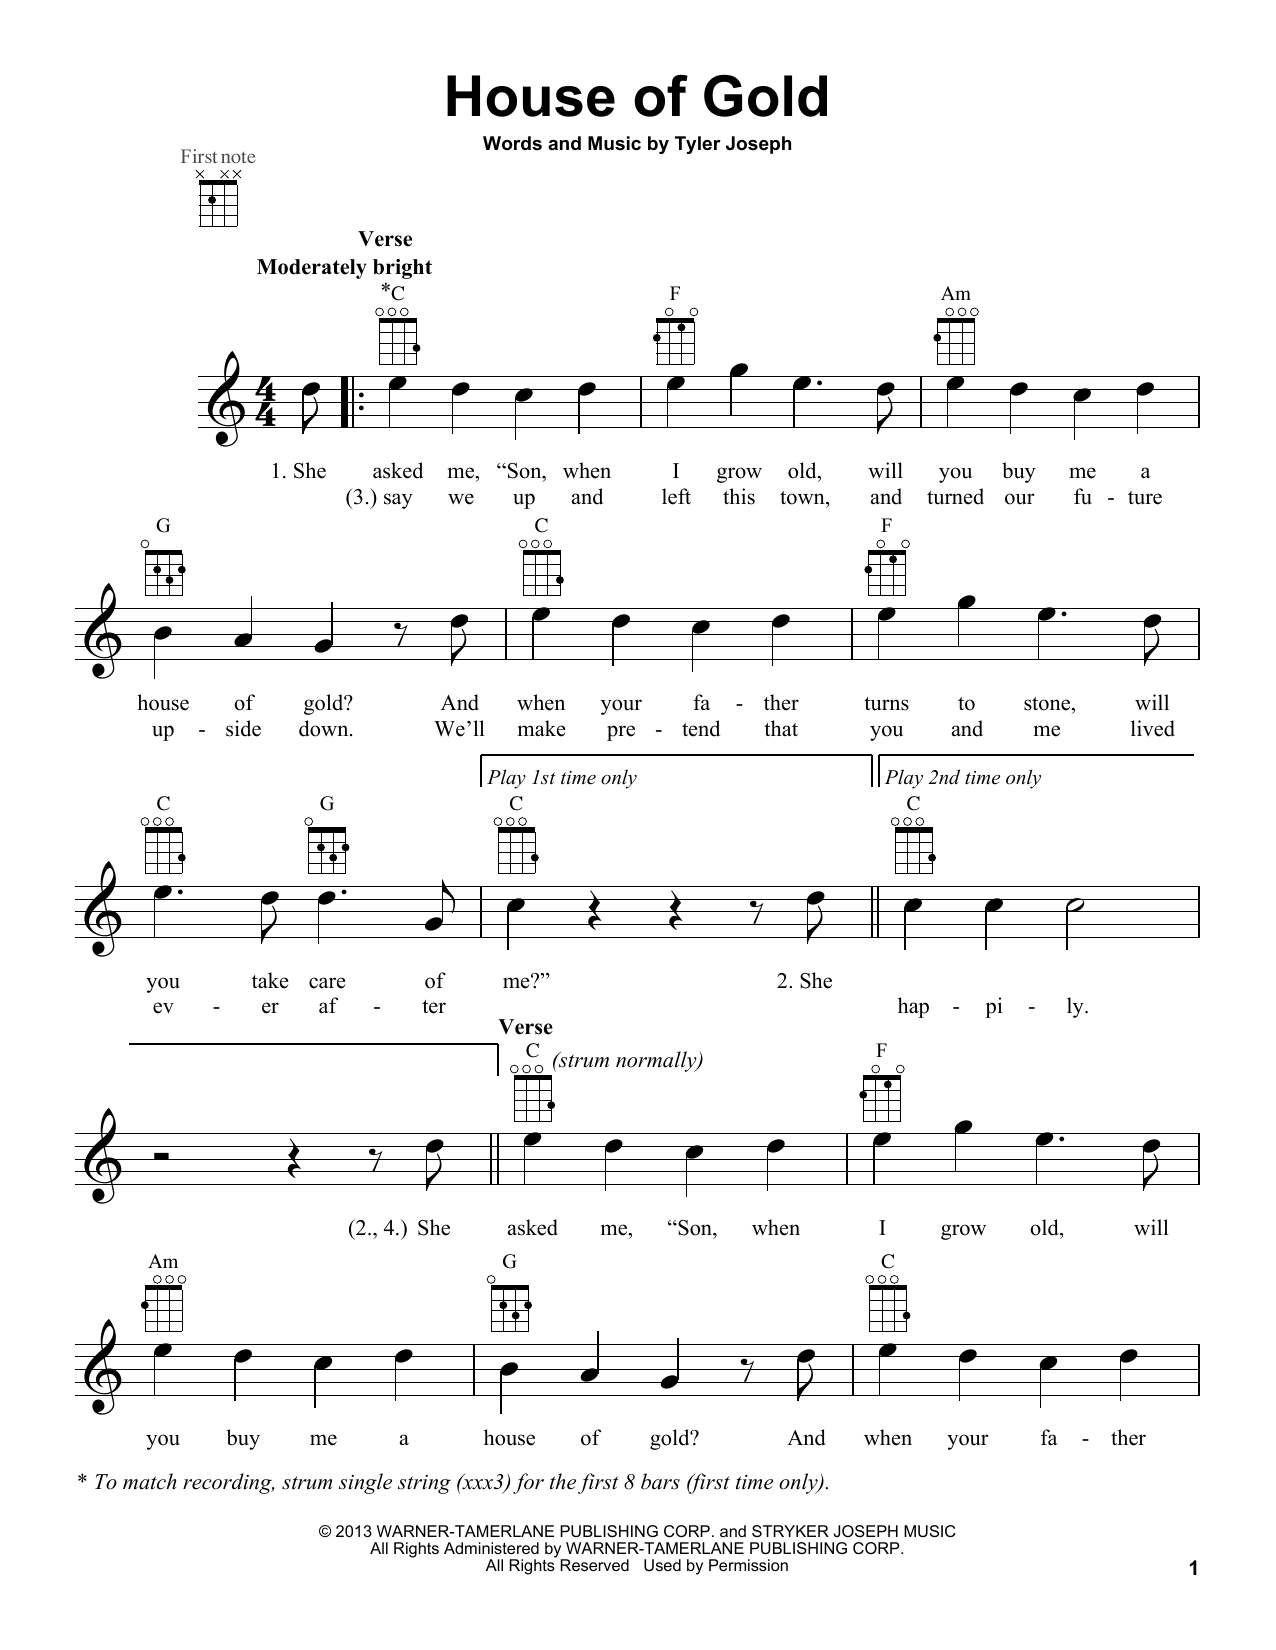 twenty one pilots House Of Gold sheet music notes and chords